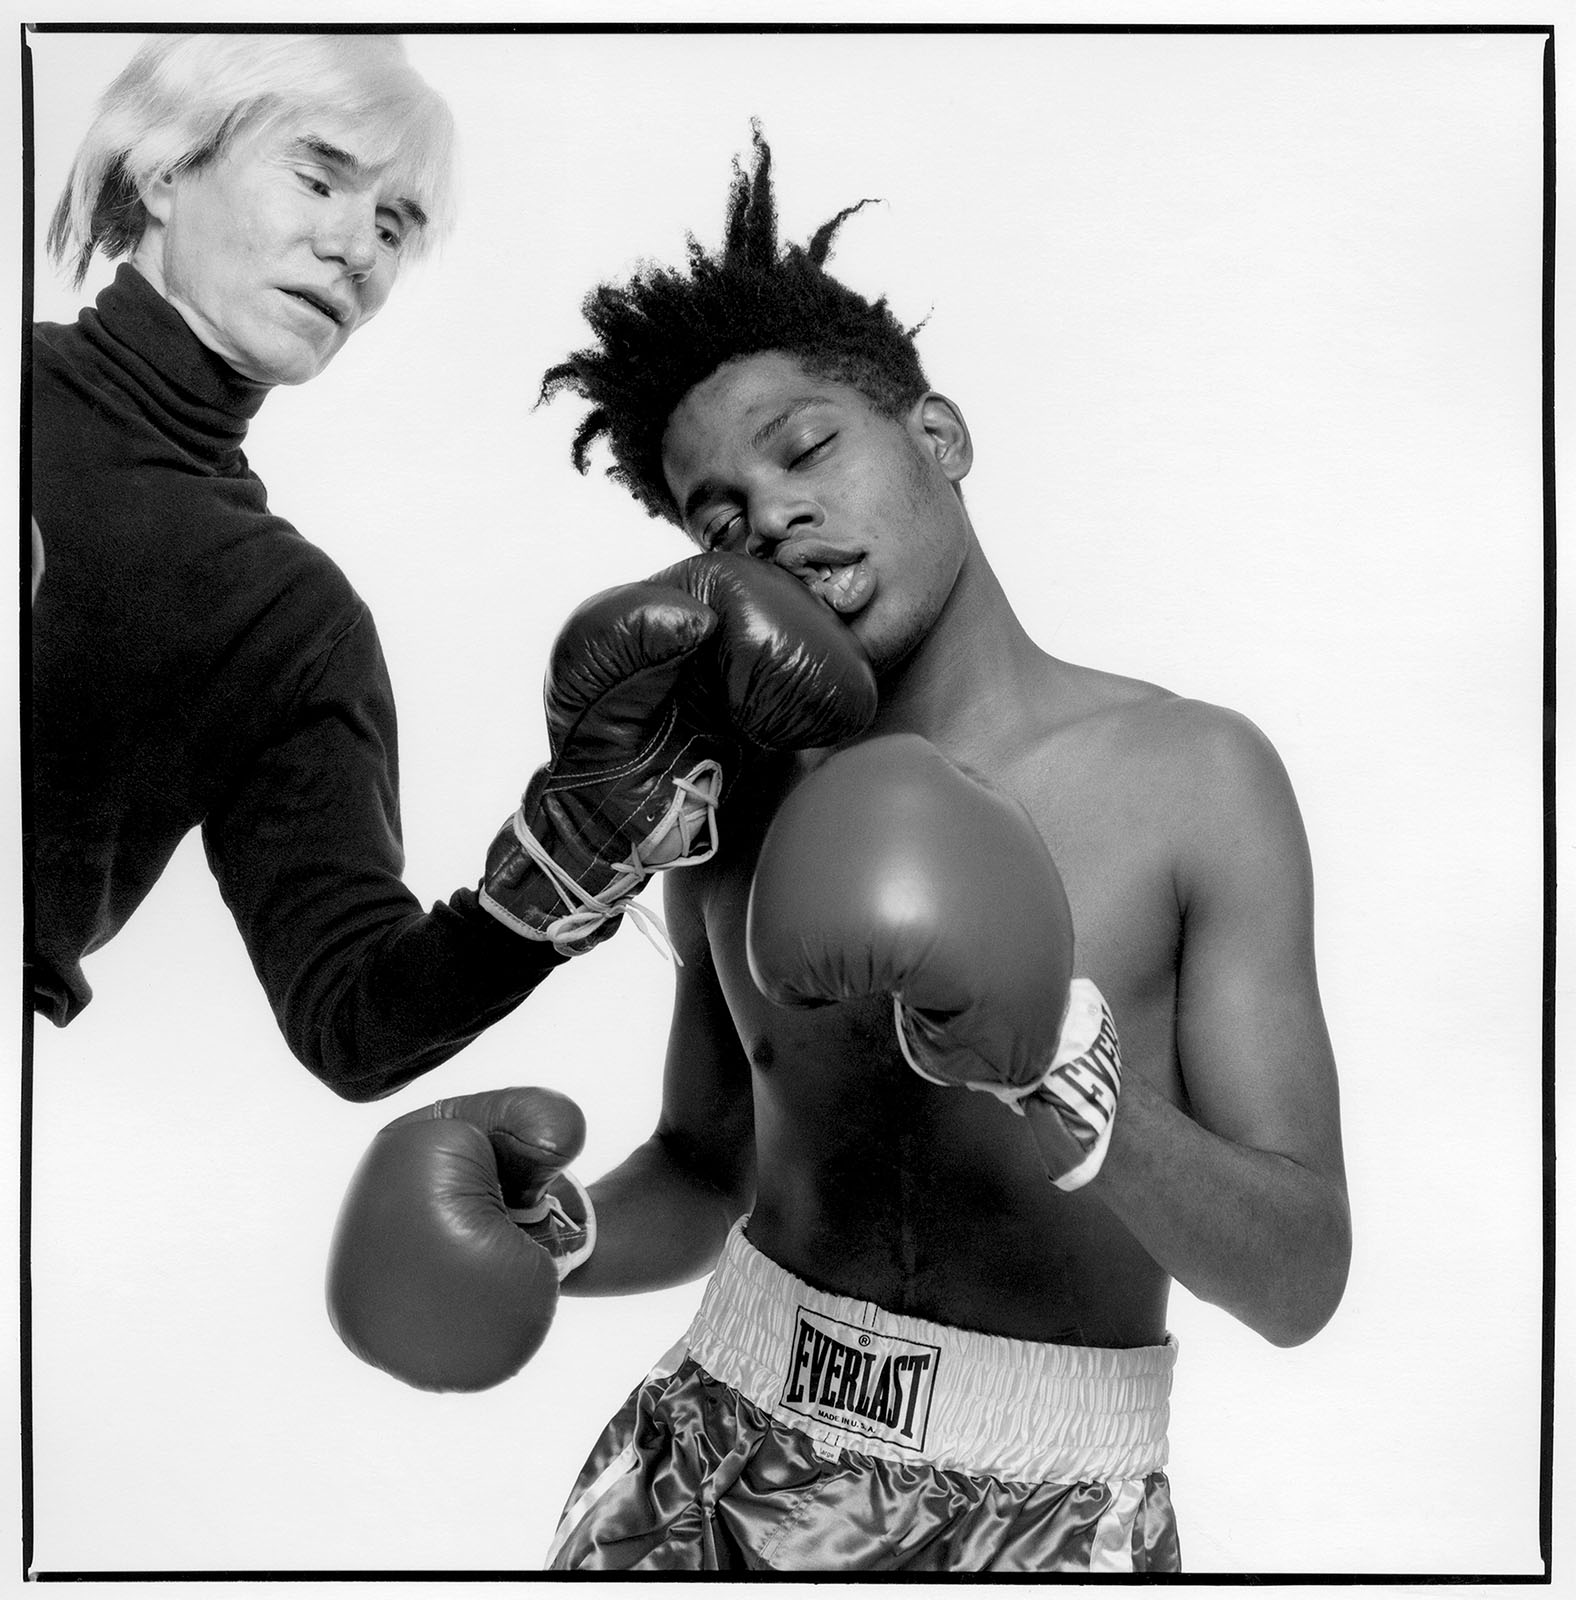 Andy Warhol and Jean Michel Basquiat - Saint Laurent Everlast by RUNWAY MAGAZINE - Photo (C) MICHAEL HALSBAND